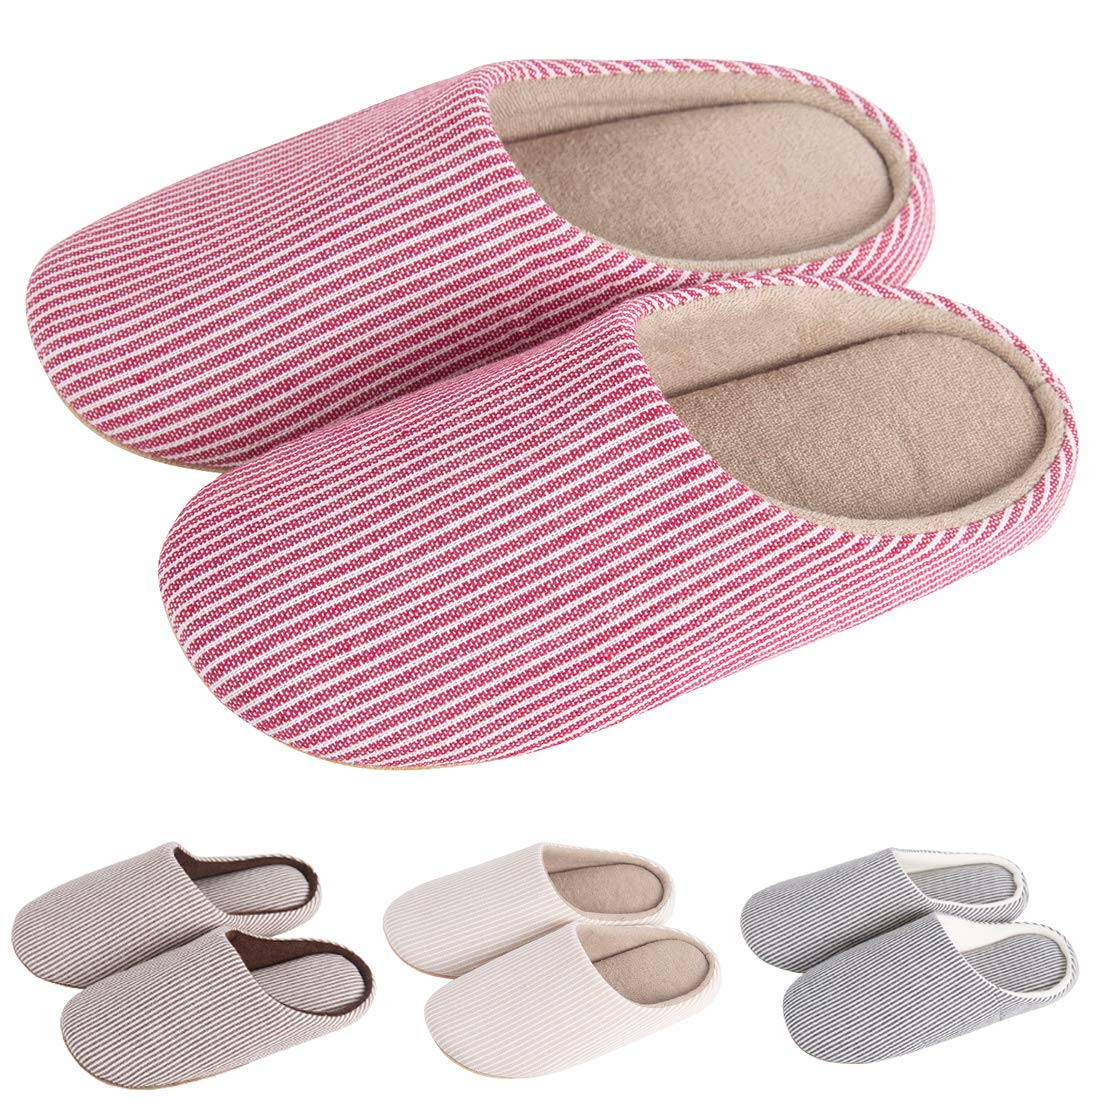 KRIMUS Indoor Slippers |Striped Slippers| Slippers for Women|Slippers for Men|Couple Slippers(Pink-S)